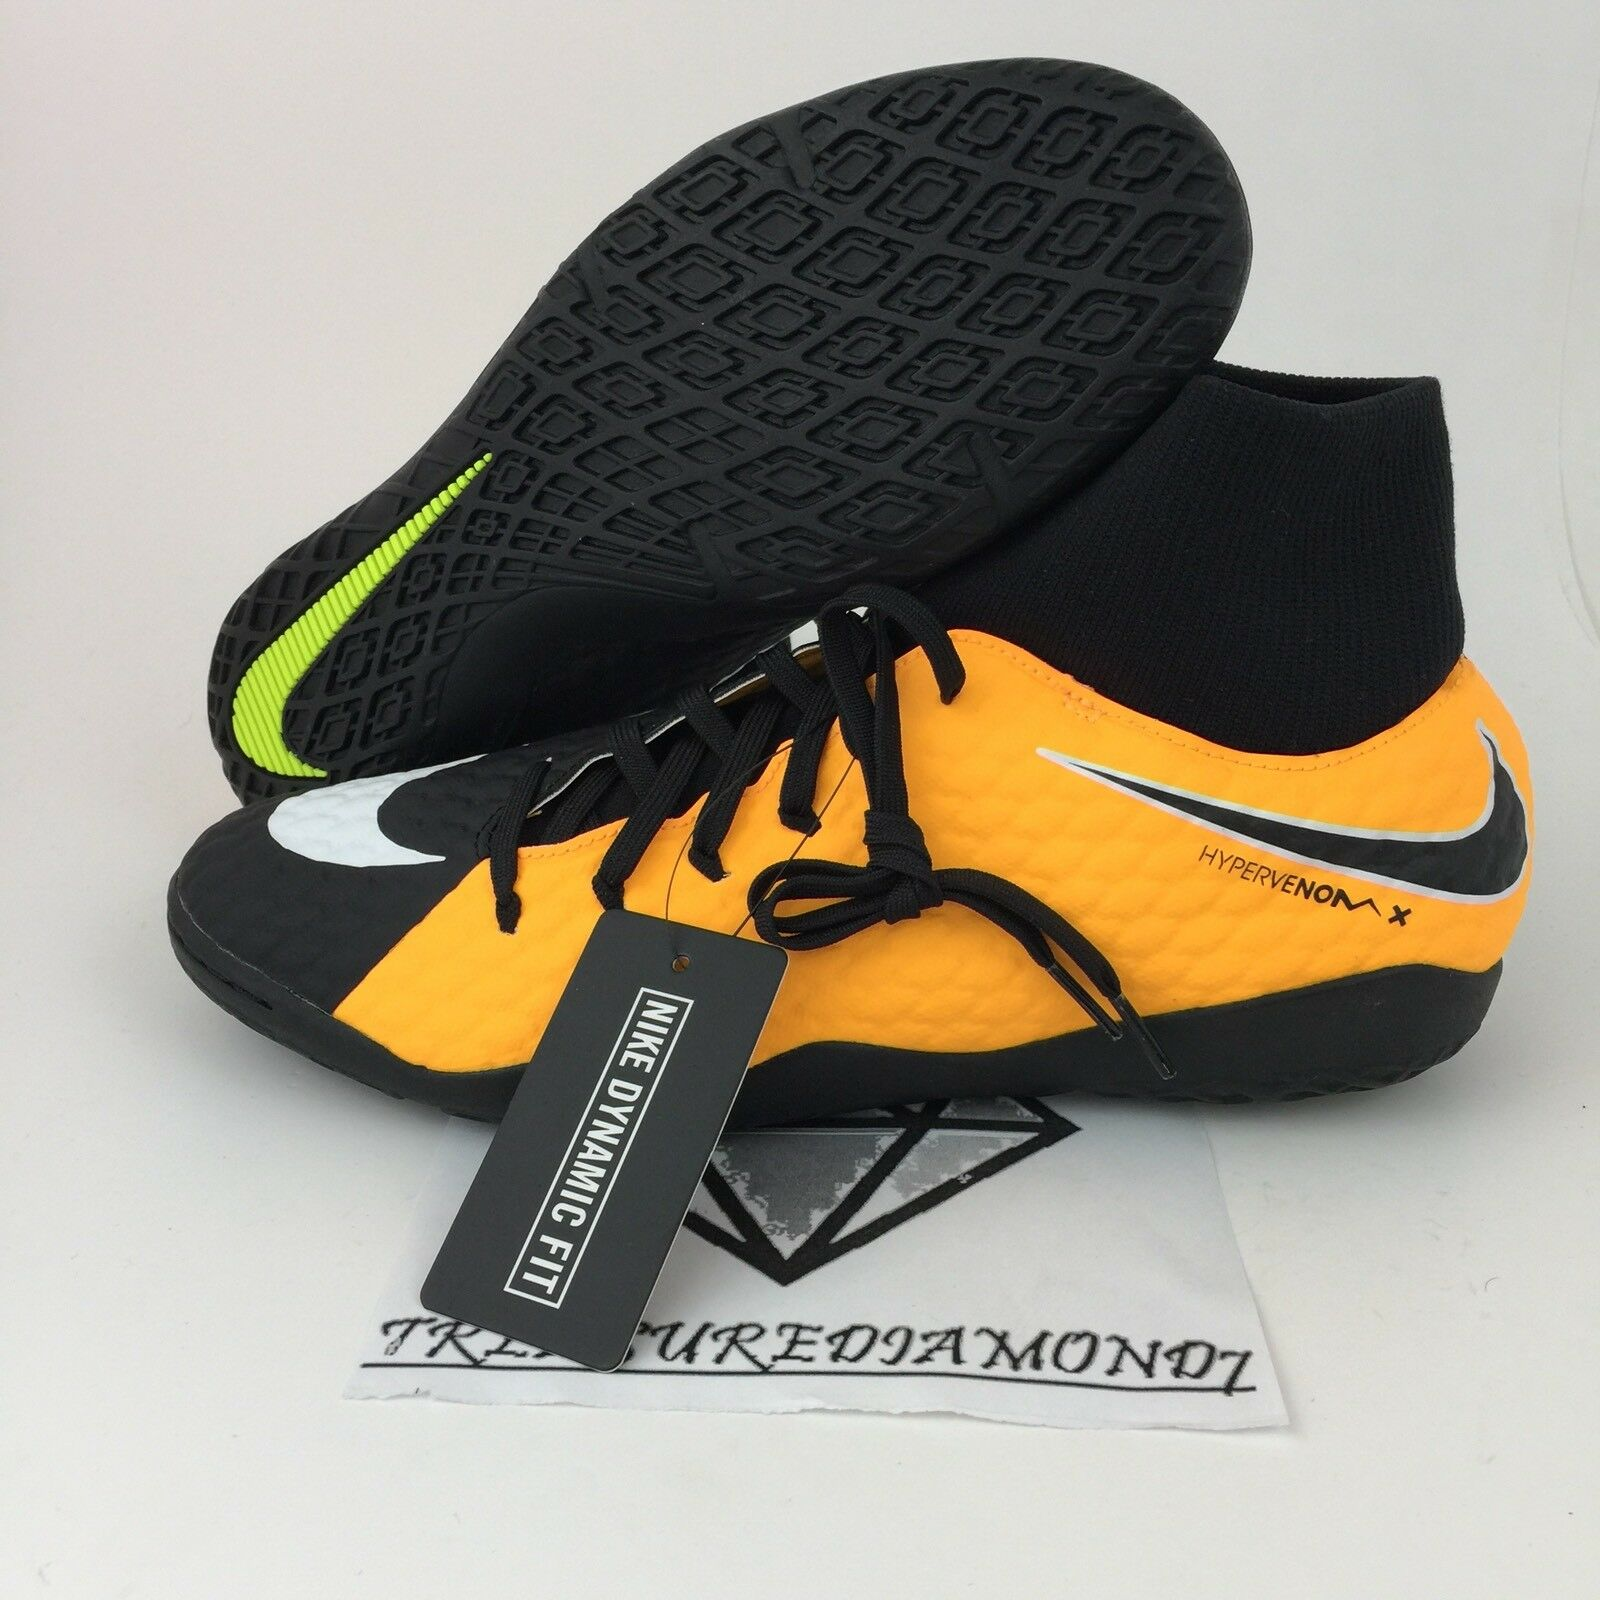 NIKE HYPERVENOMX PHELON 3 DF IC Price reduction MNS.Price reduction Special limited time